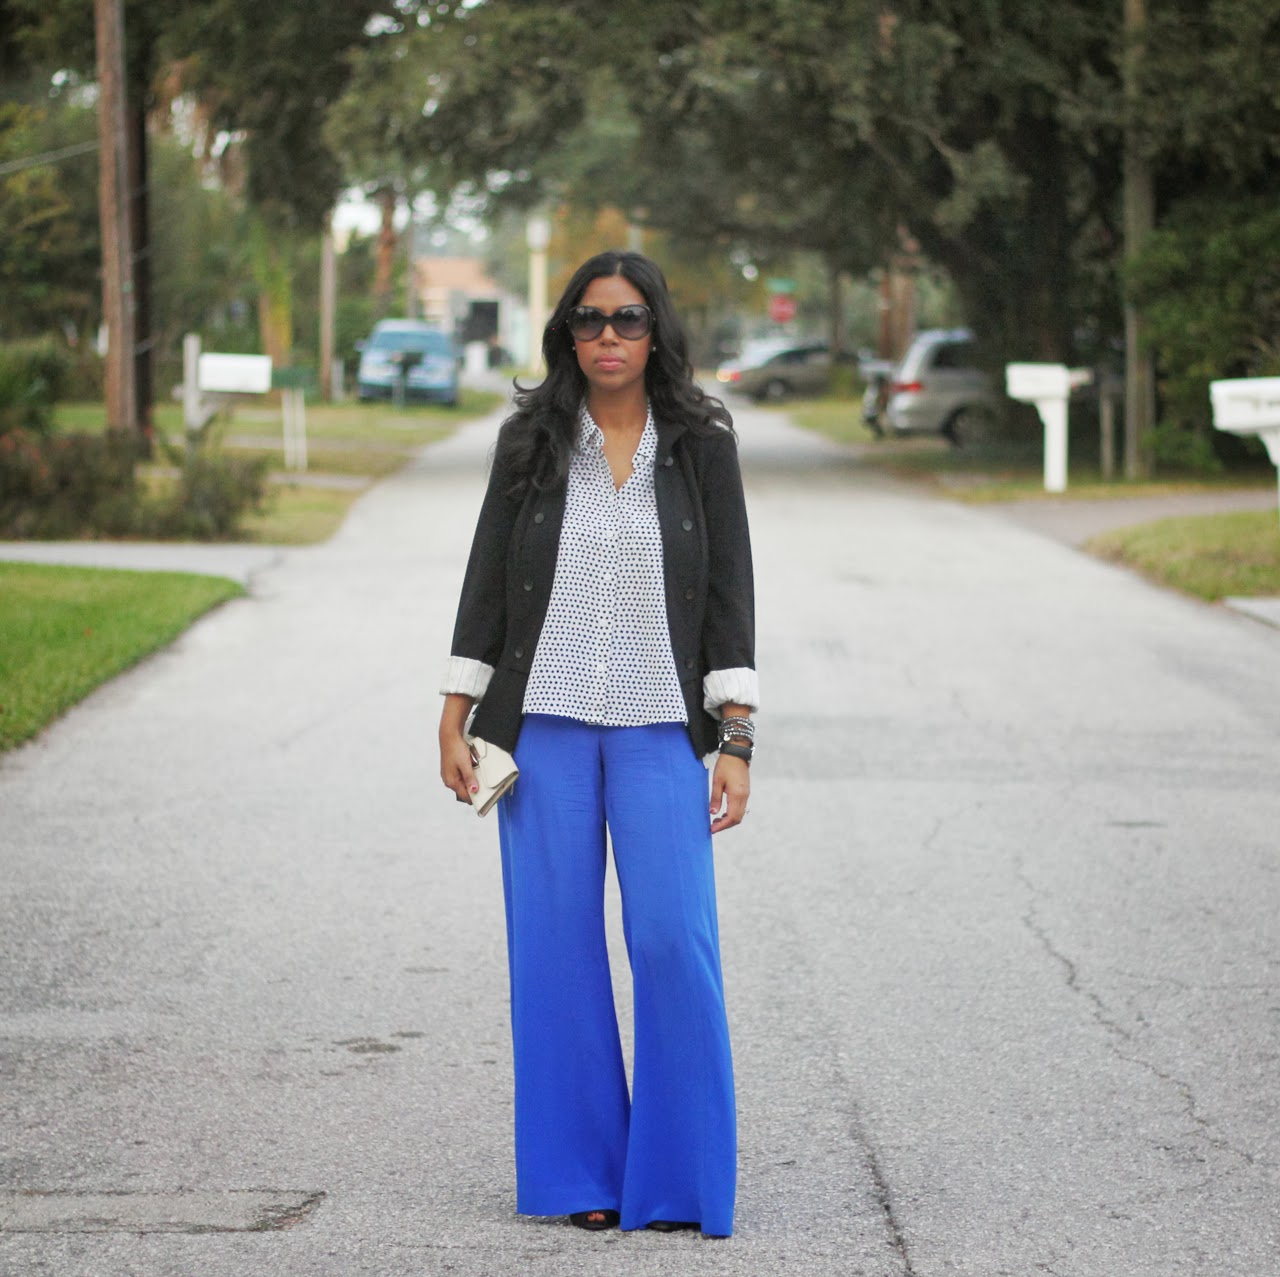 equipment star shirt louis vuitton epi wallet celine shoes cobalt silk wide leg pant